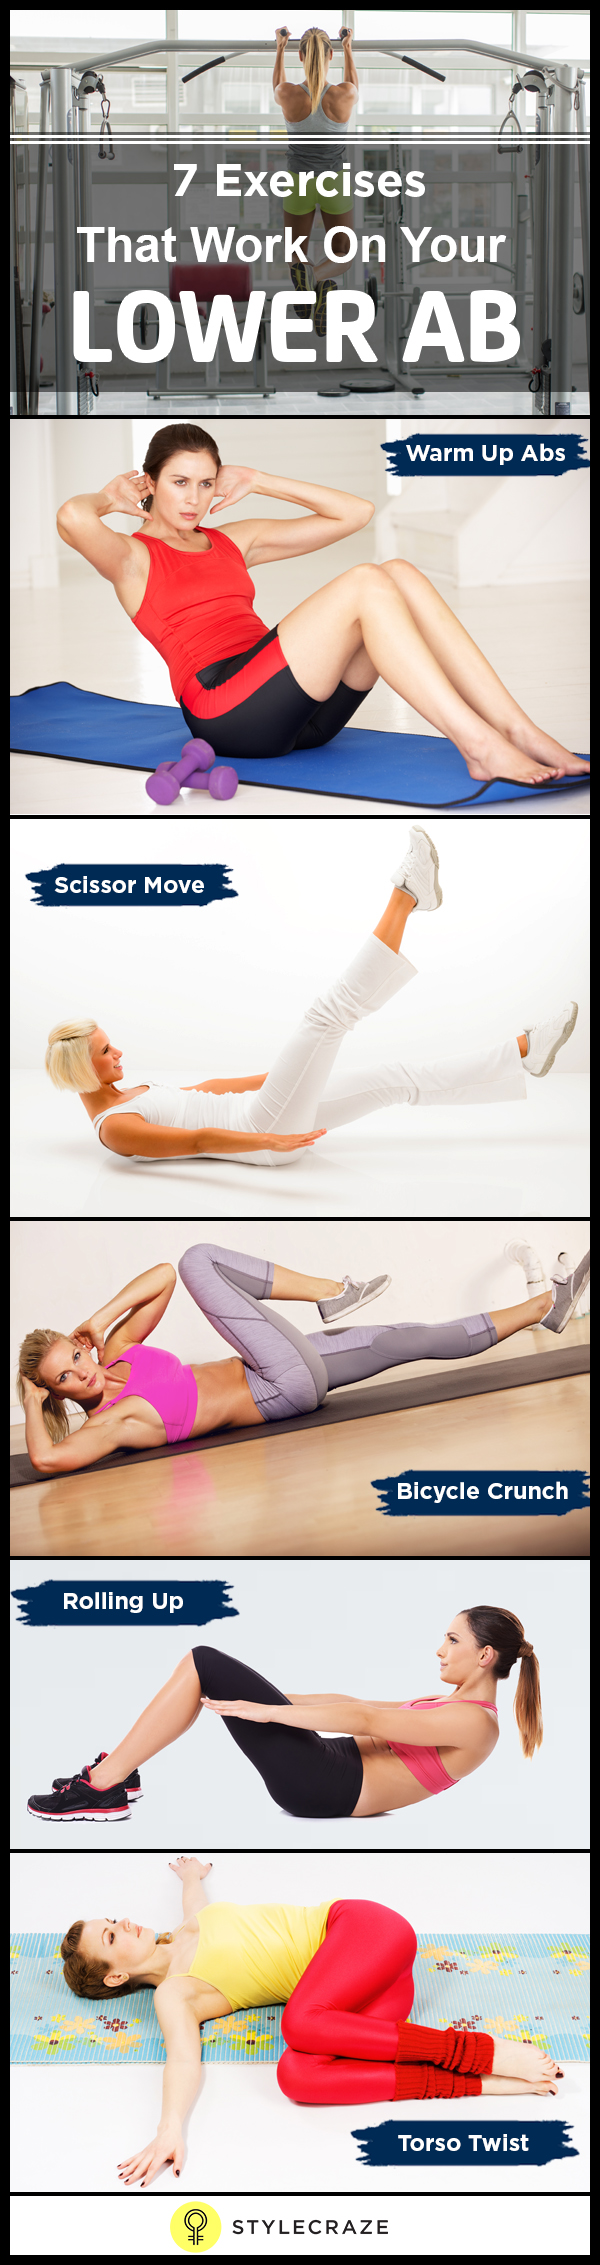 7 Excerises that work on your lower ab www.stylecraze.comarticleseffective-lower-abs-workout-for-women